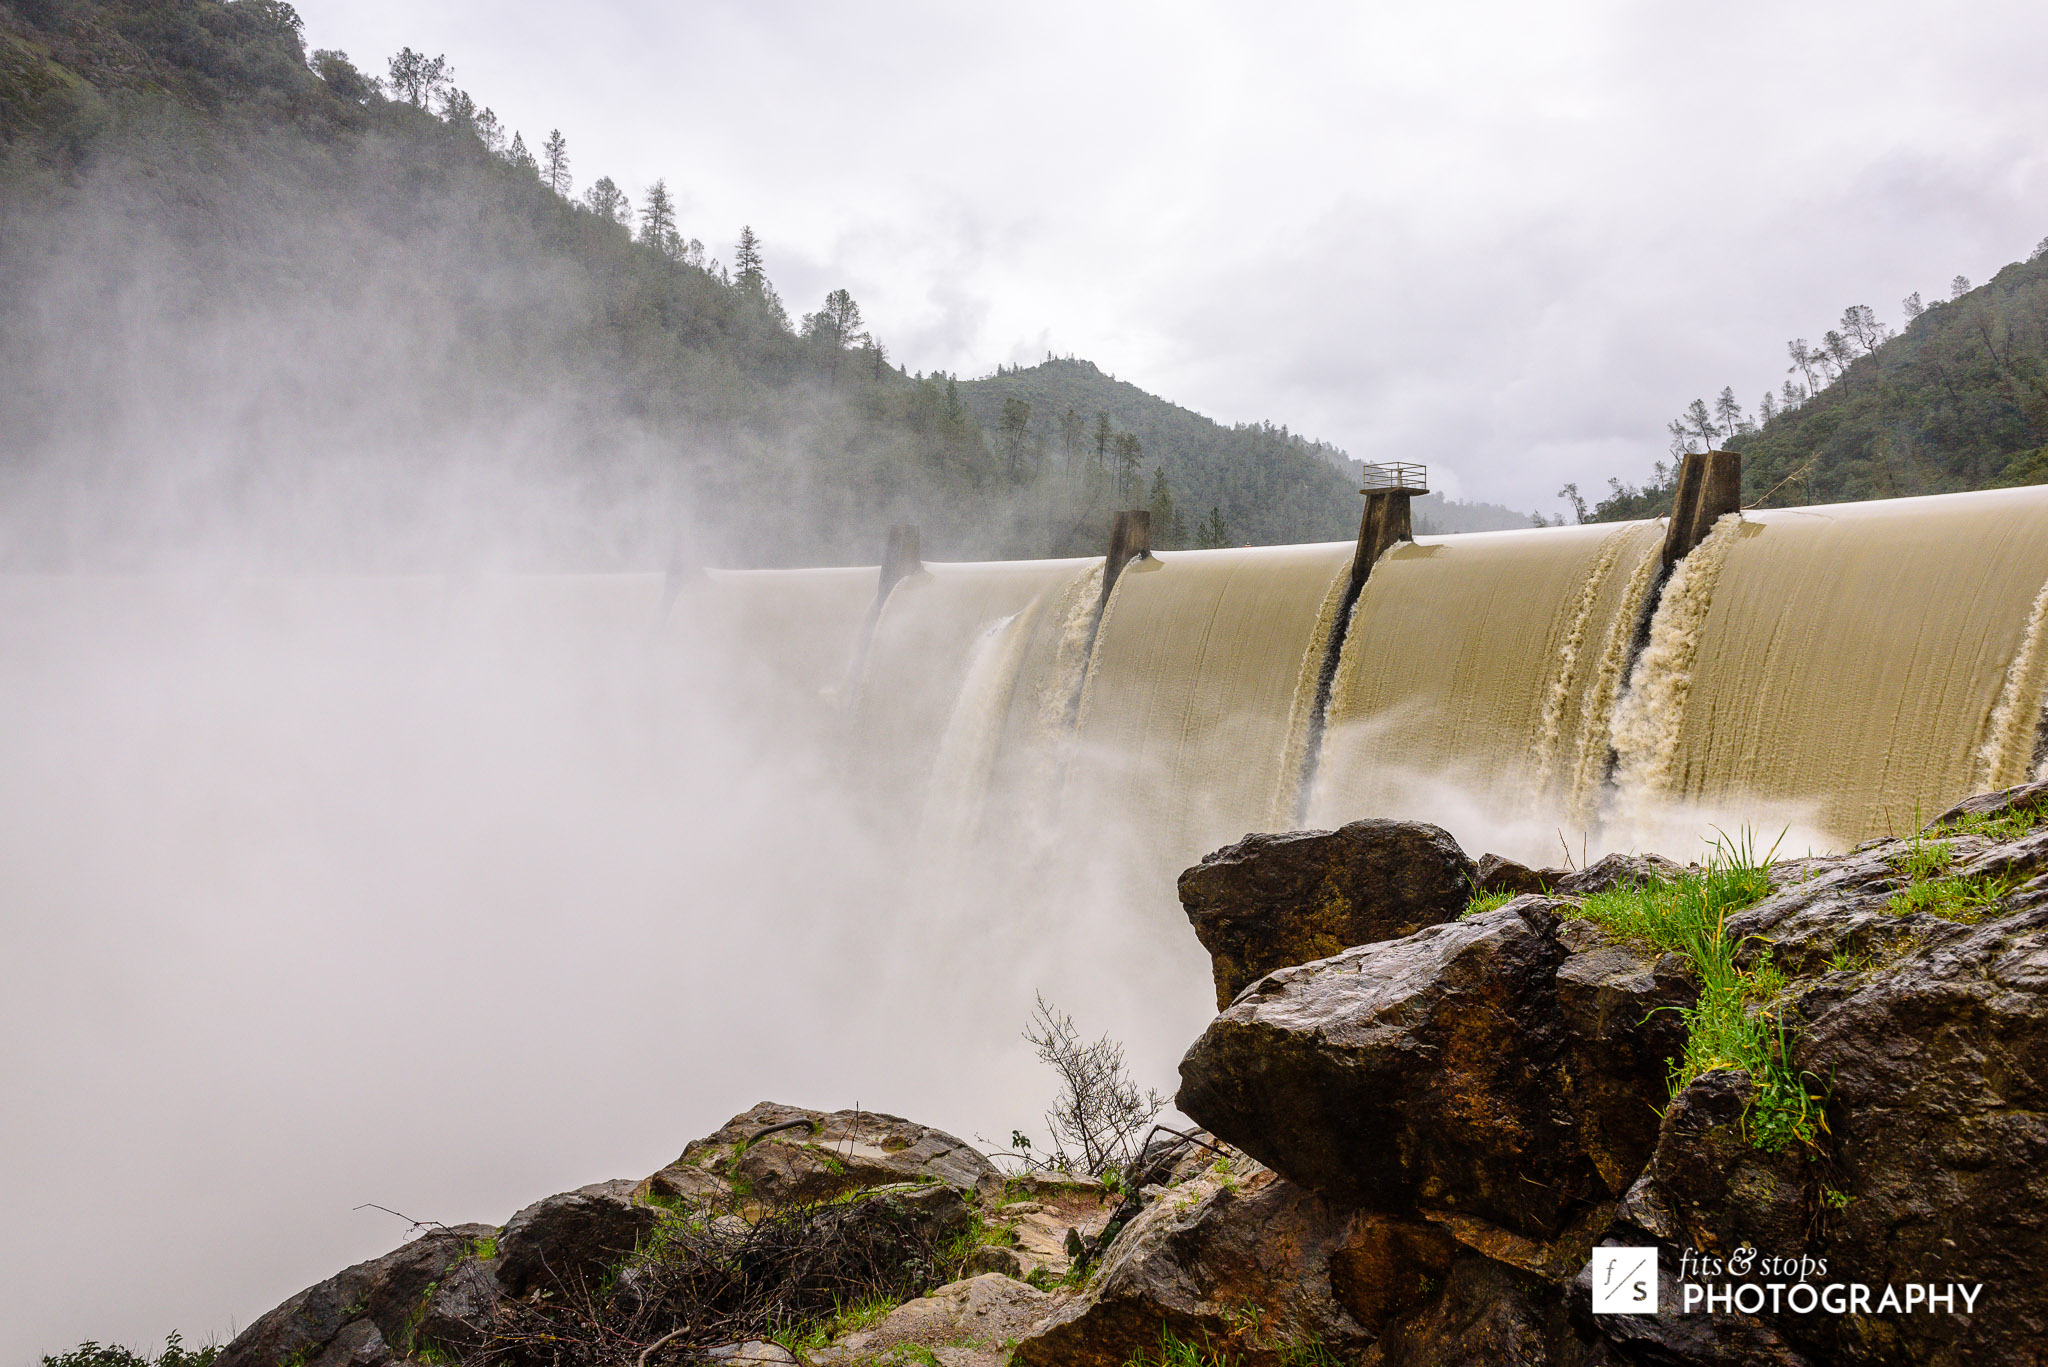 Dam overflowing at Lake Clementine